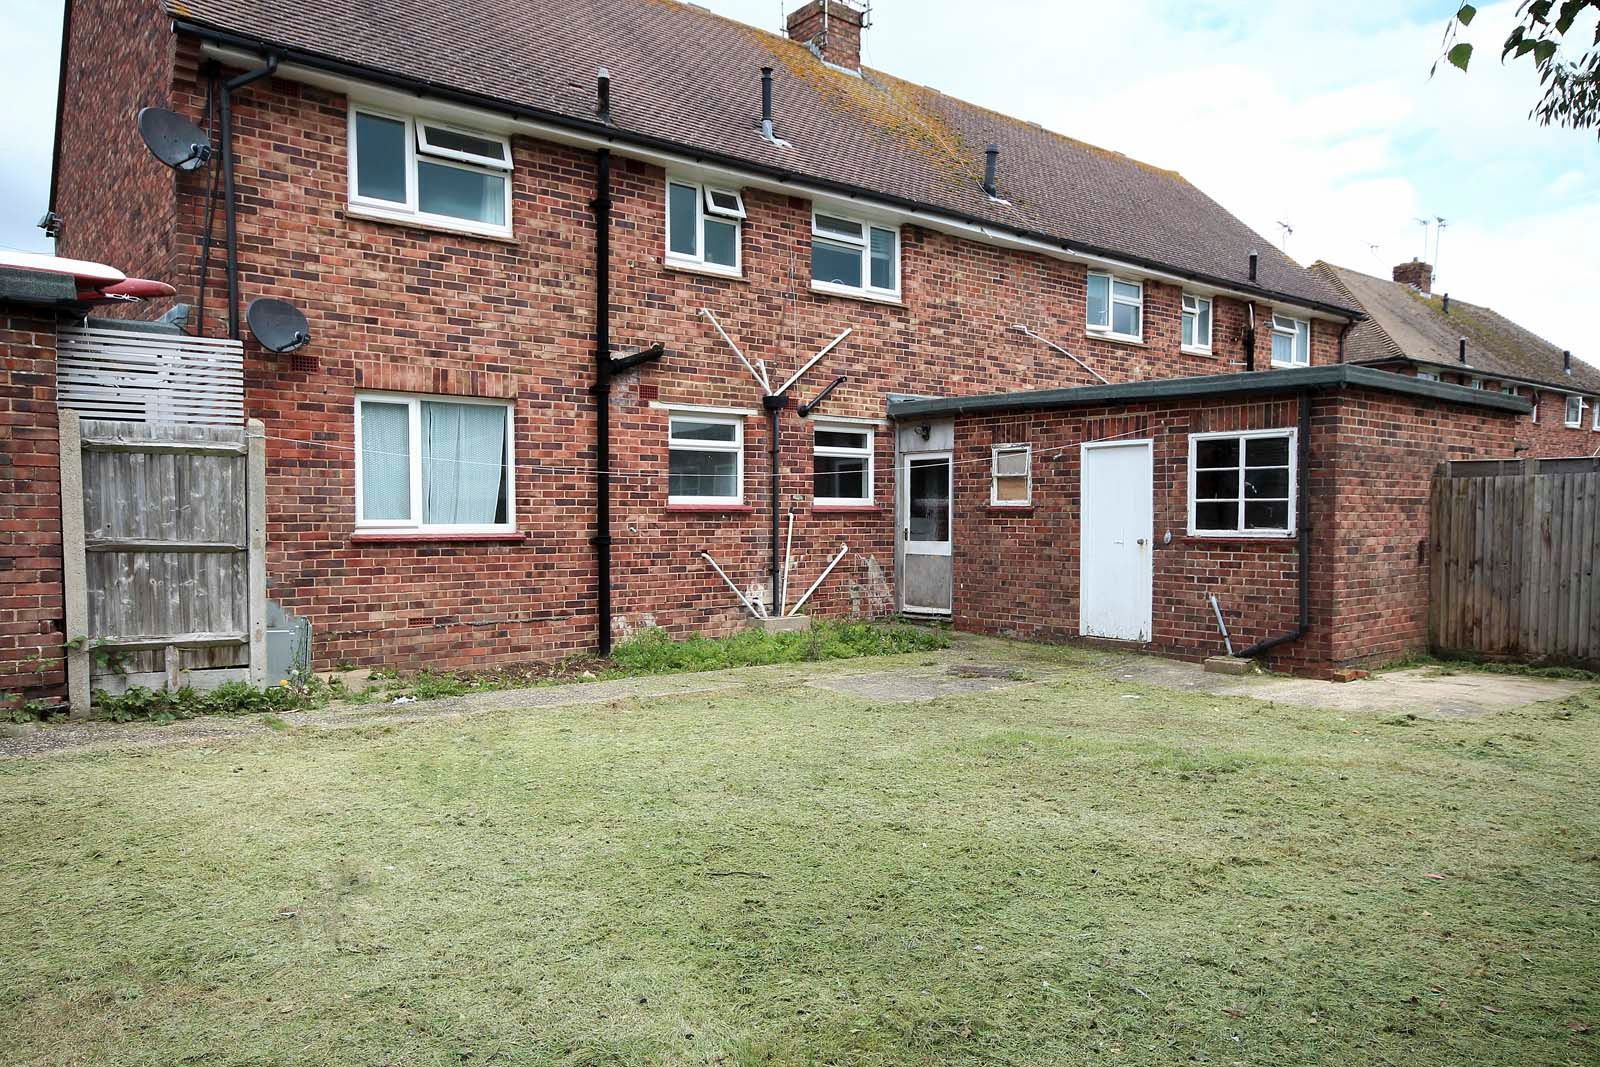 2 bed Apartment to rent in East Preston - Rear view (Property Image 8)